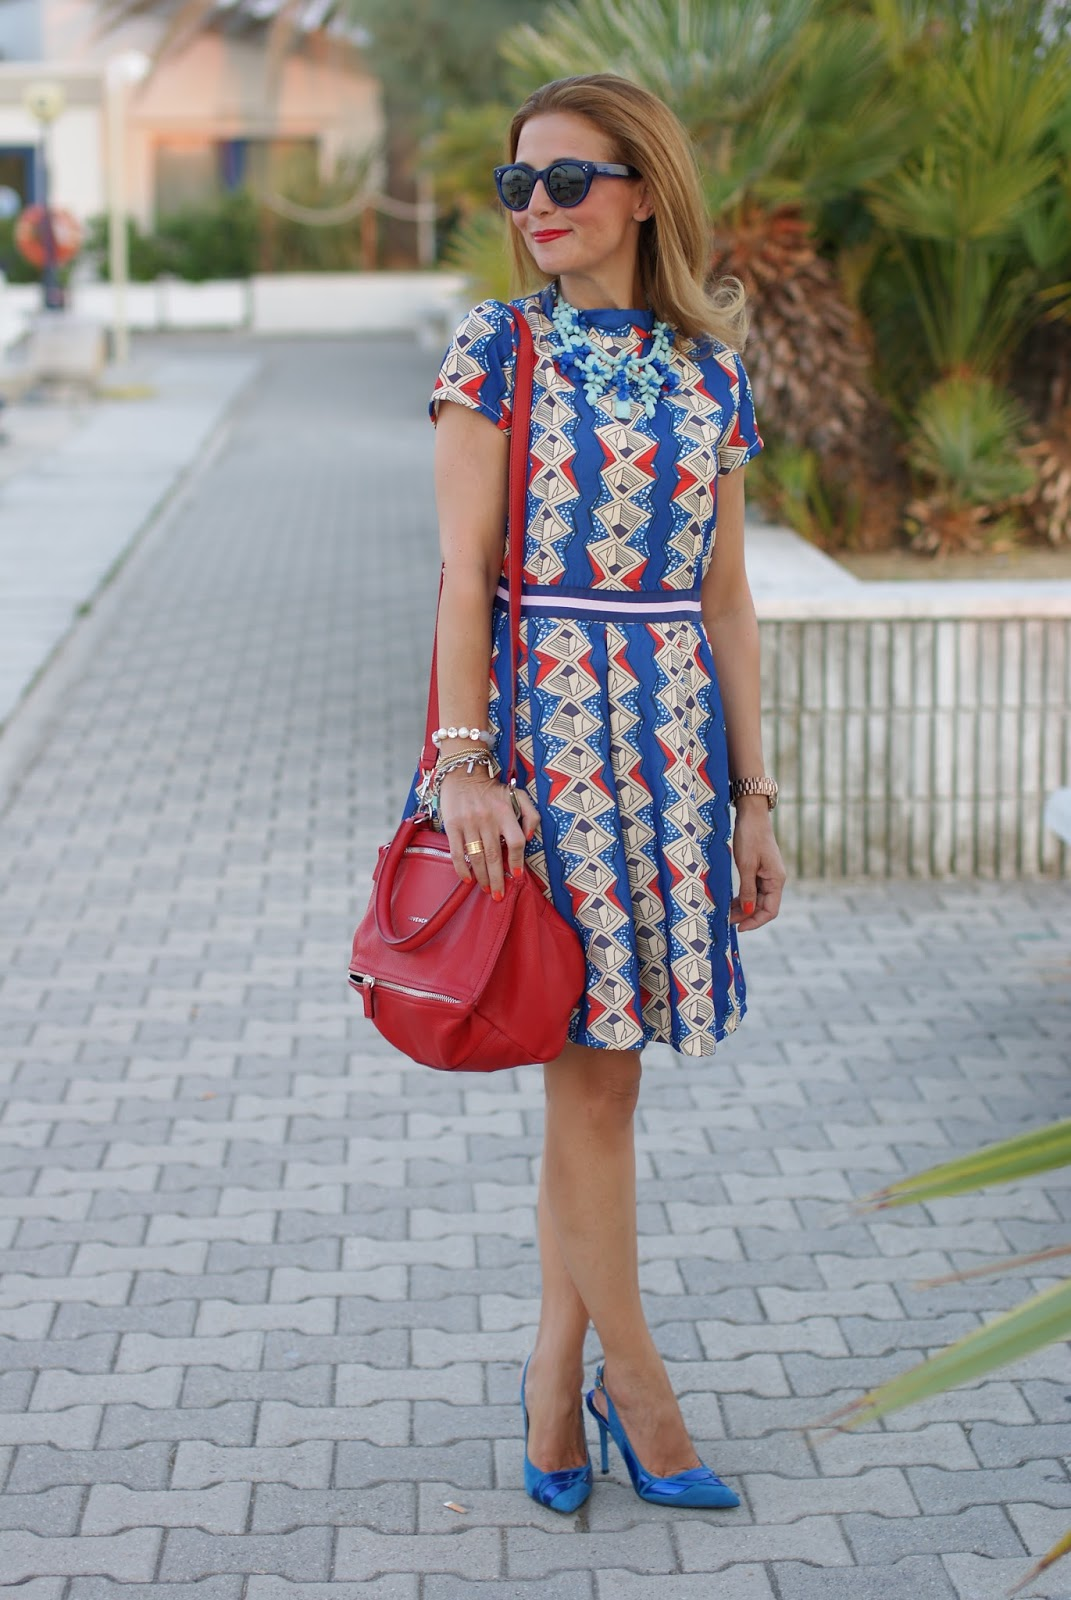 argyle print dress and givenchy red pandora bag on Fashion and Cookies fashion blog, fashion blogger style